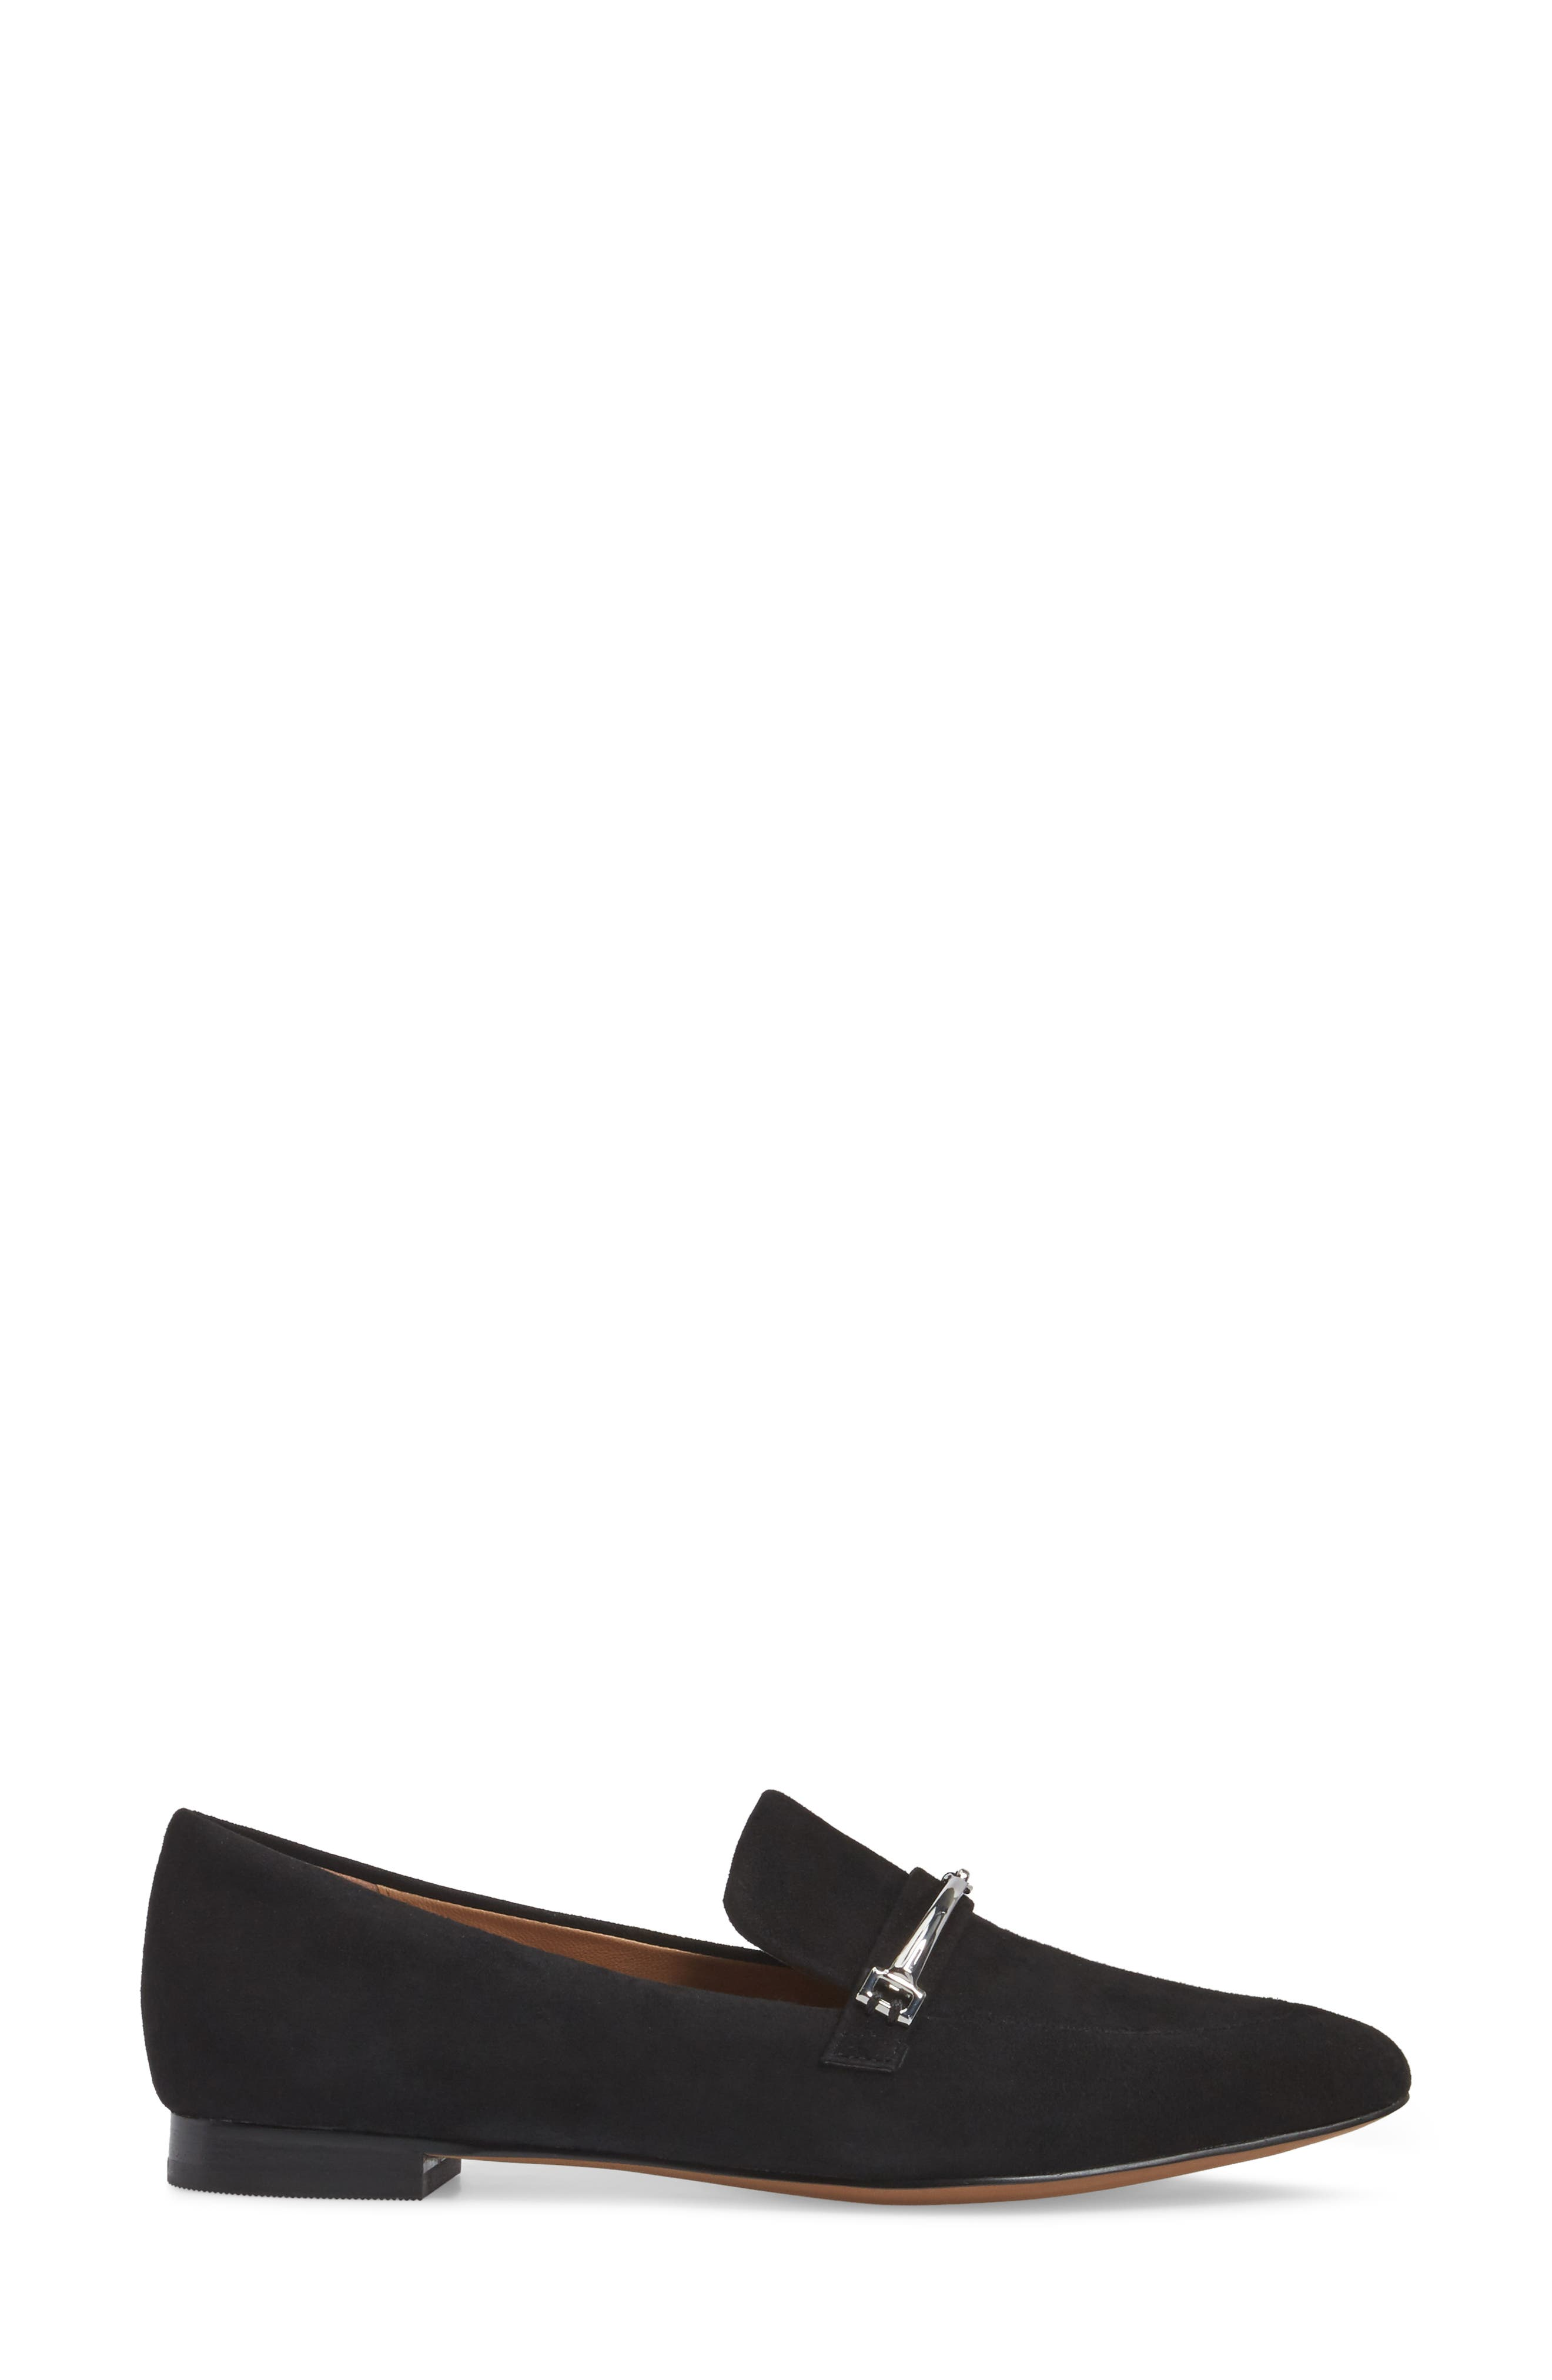 Molly Loafer,                             Alternate thumbnail 3, color,                             Black Suede